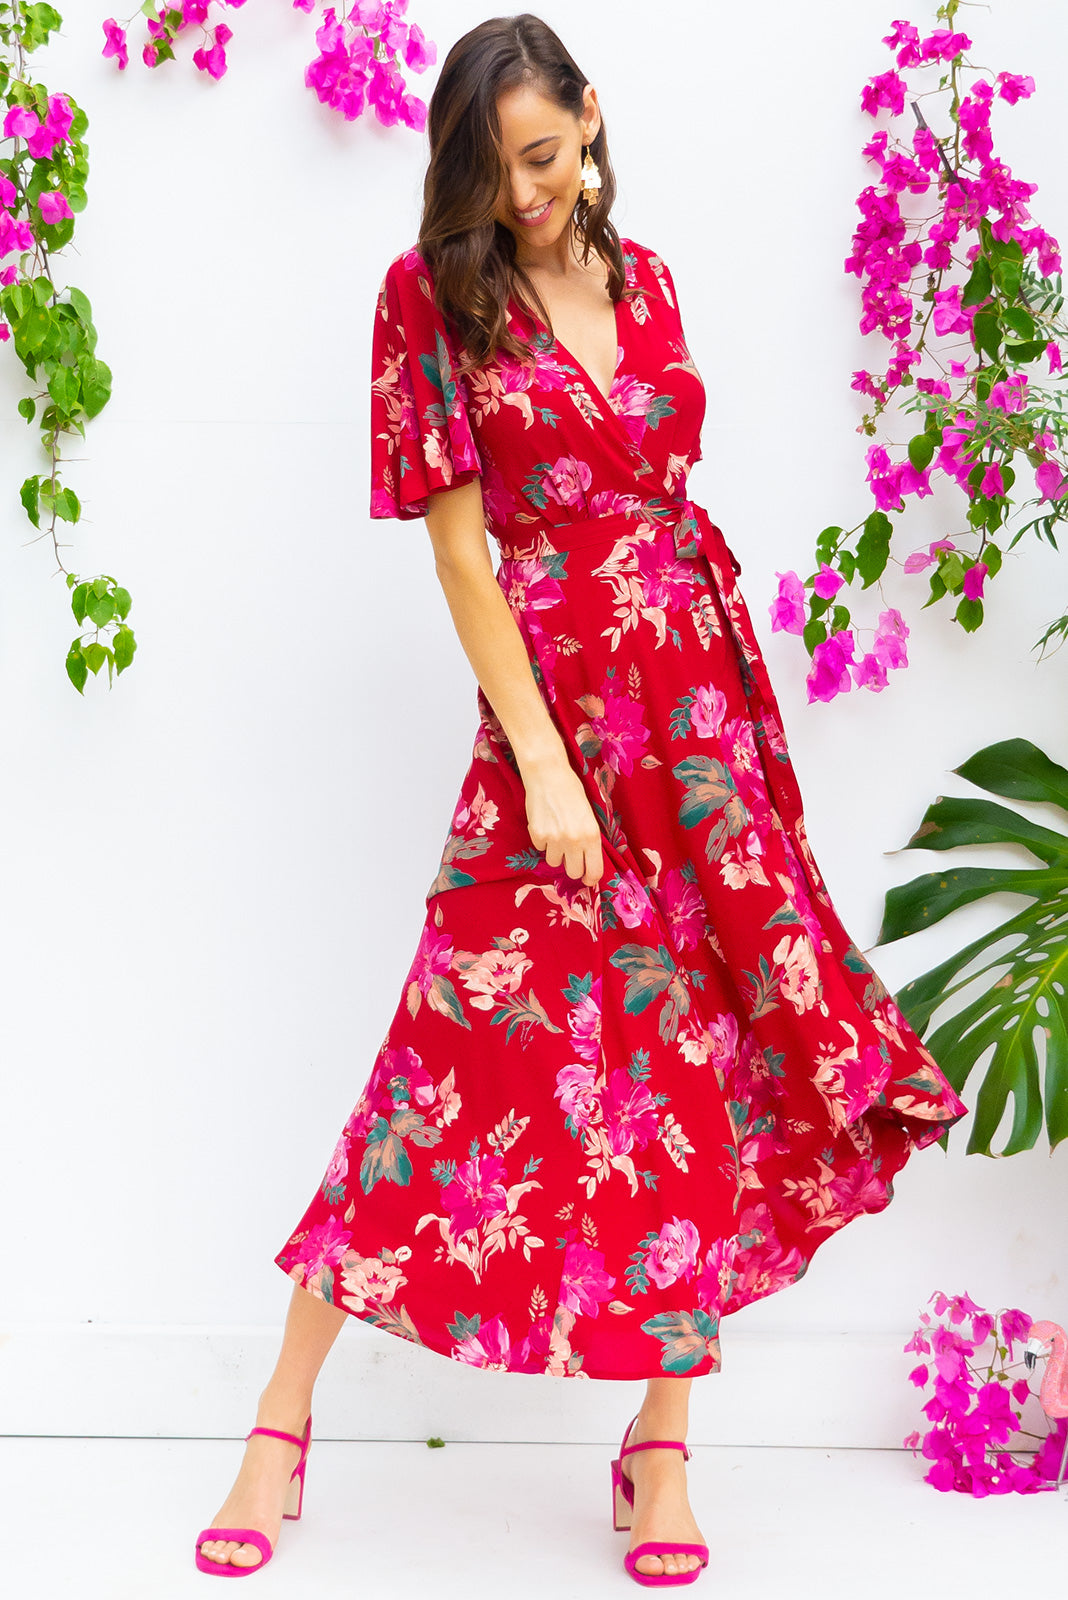 Petal Red Romance Maxi Wrap Dress dress features a flattering wrap around waist, petal sleeves, and a shorter at the front hemline and comes in a bold red watercolour roses  bohemian floral print on rayon